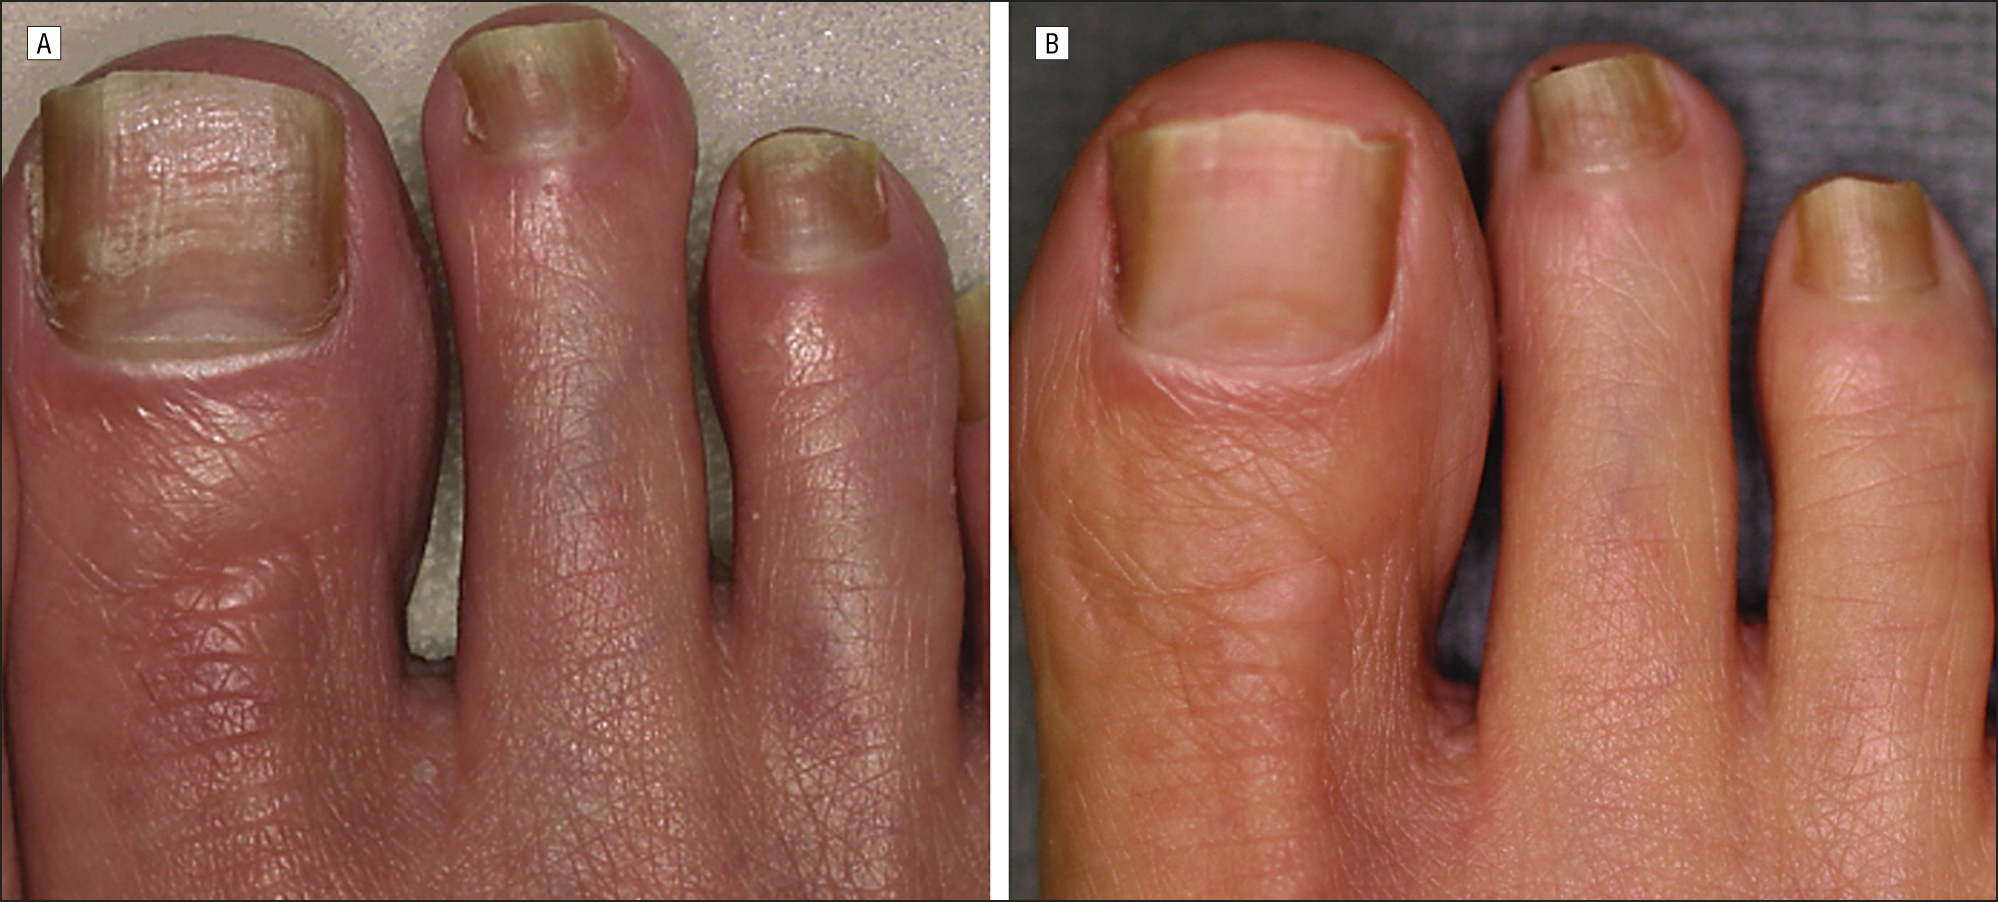 Successful Treatment Of Toenail Onychomycosis With Photodynamic